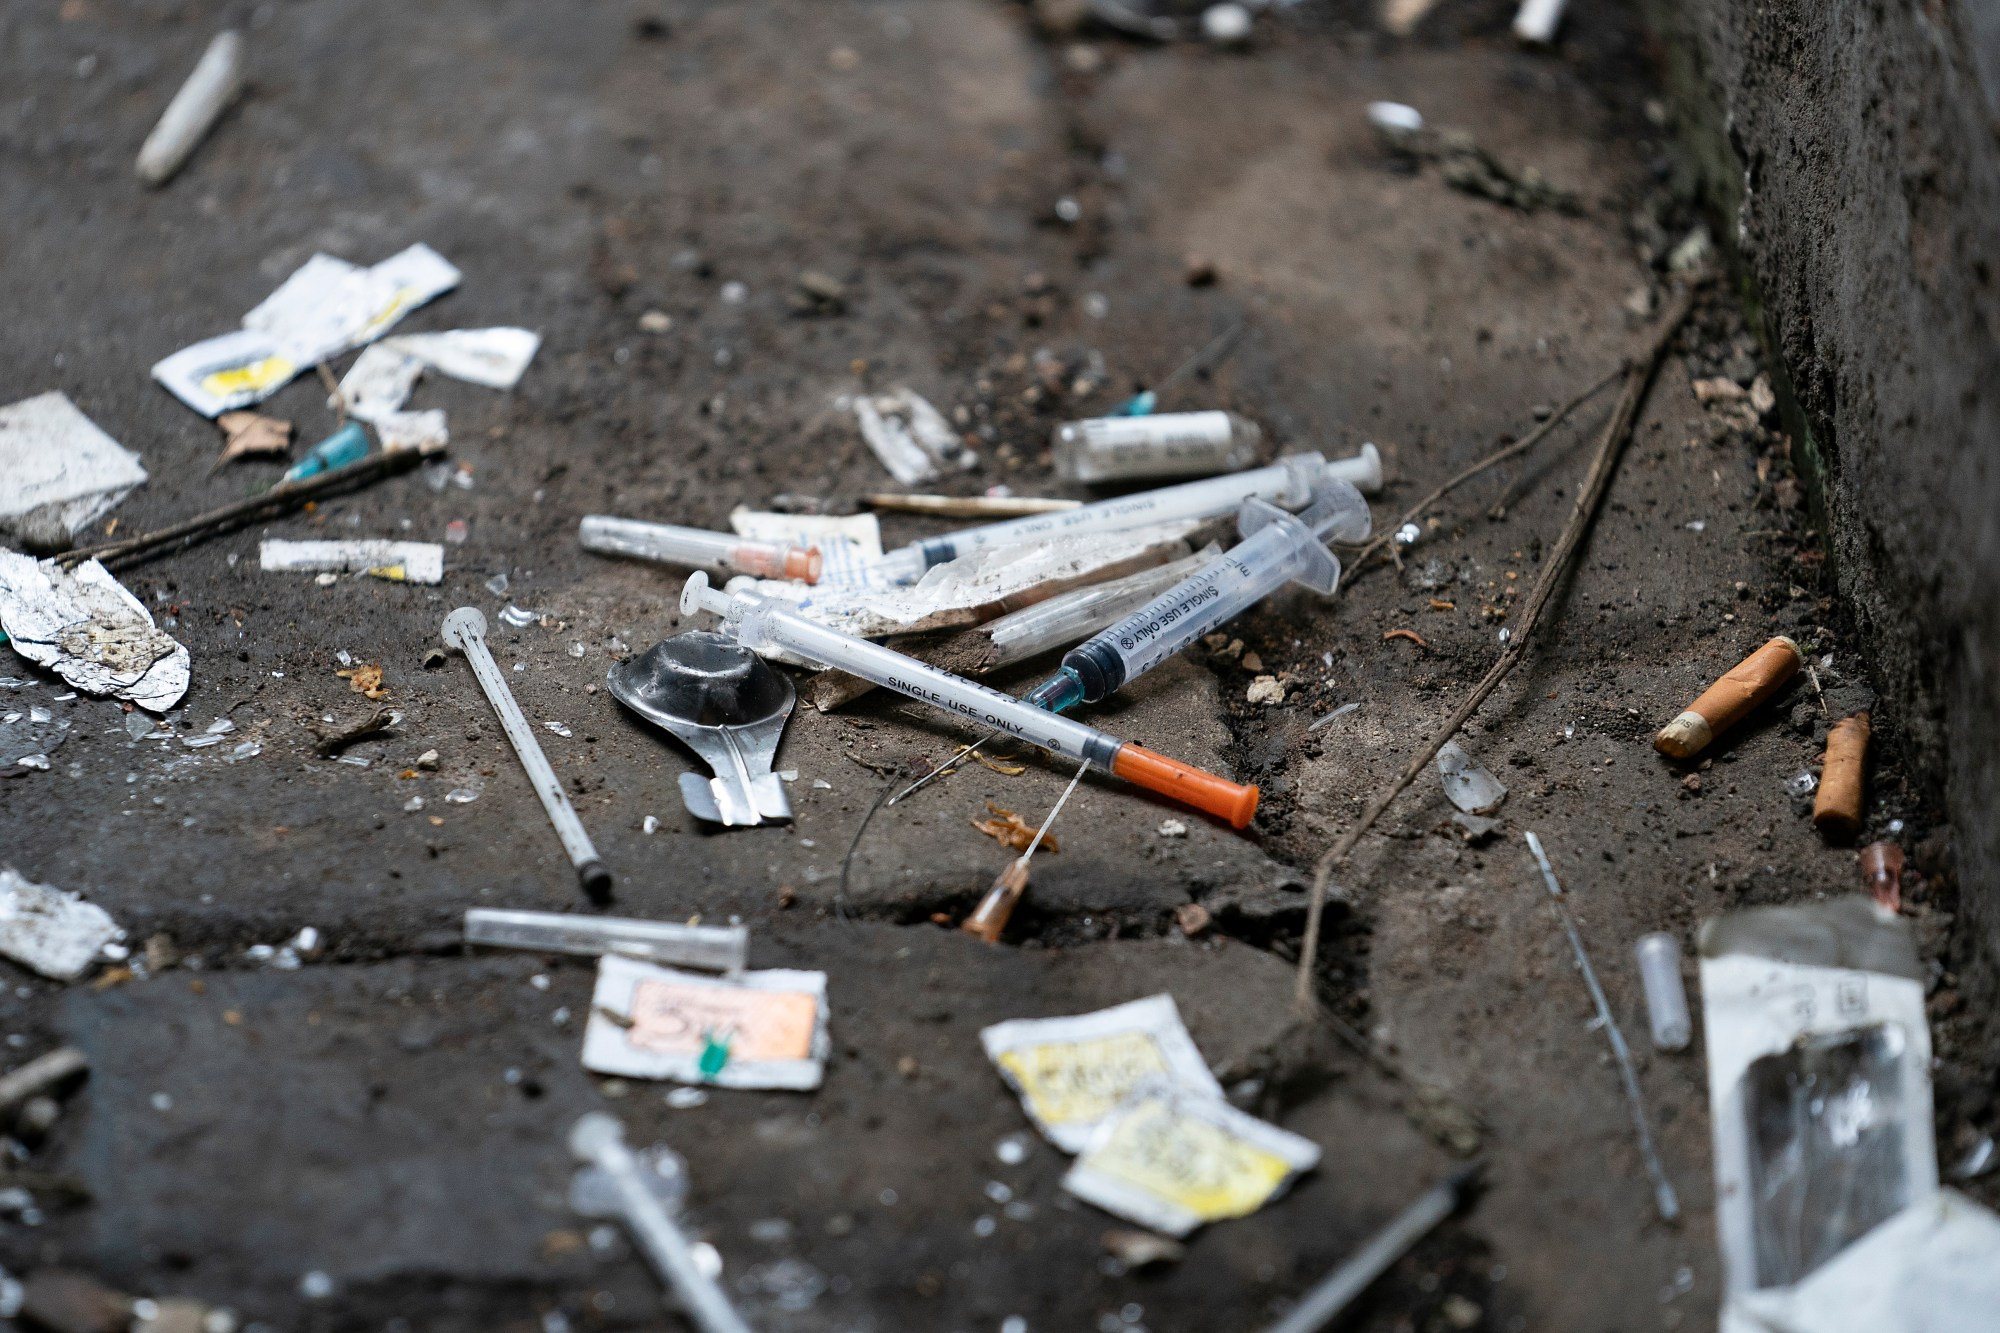 Syringes and paraphernalia used by drug users litter an alley on Dec. 06, 2018, in Walsall, England. (Christopher Furlong/Getty Images)